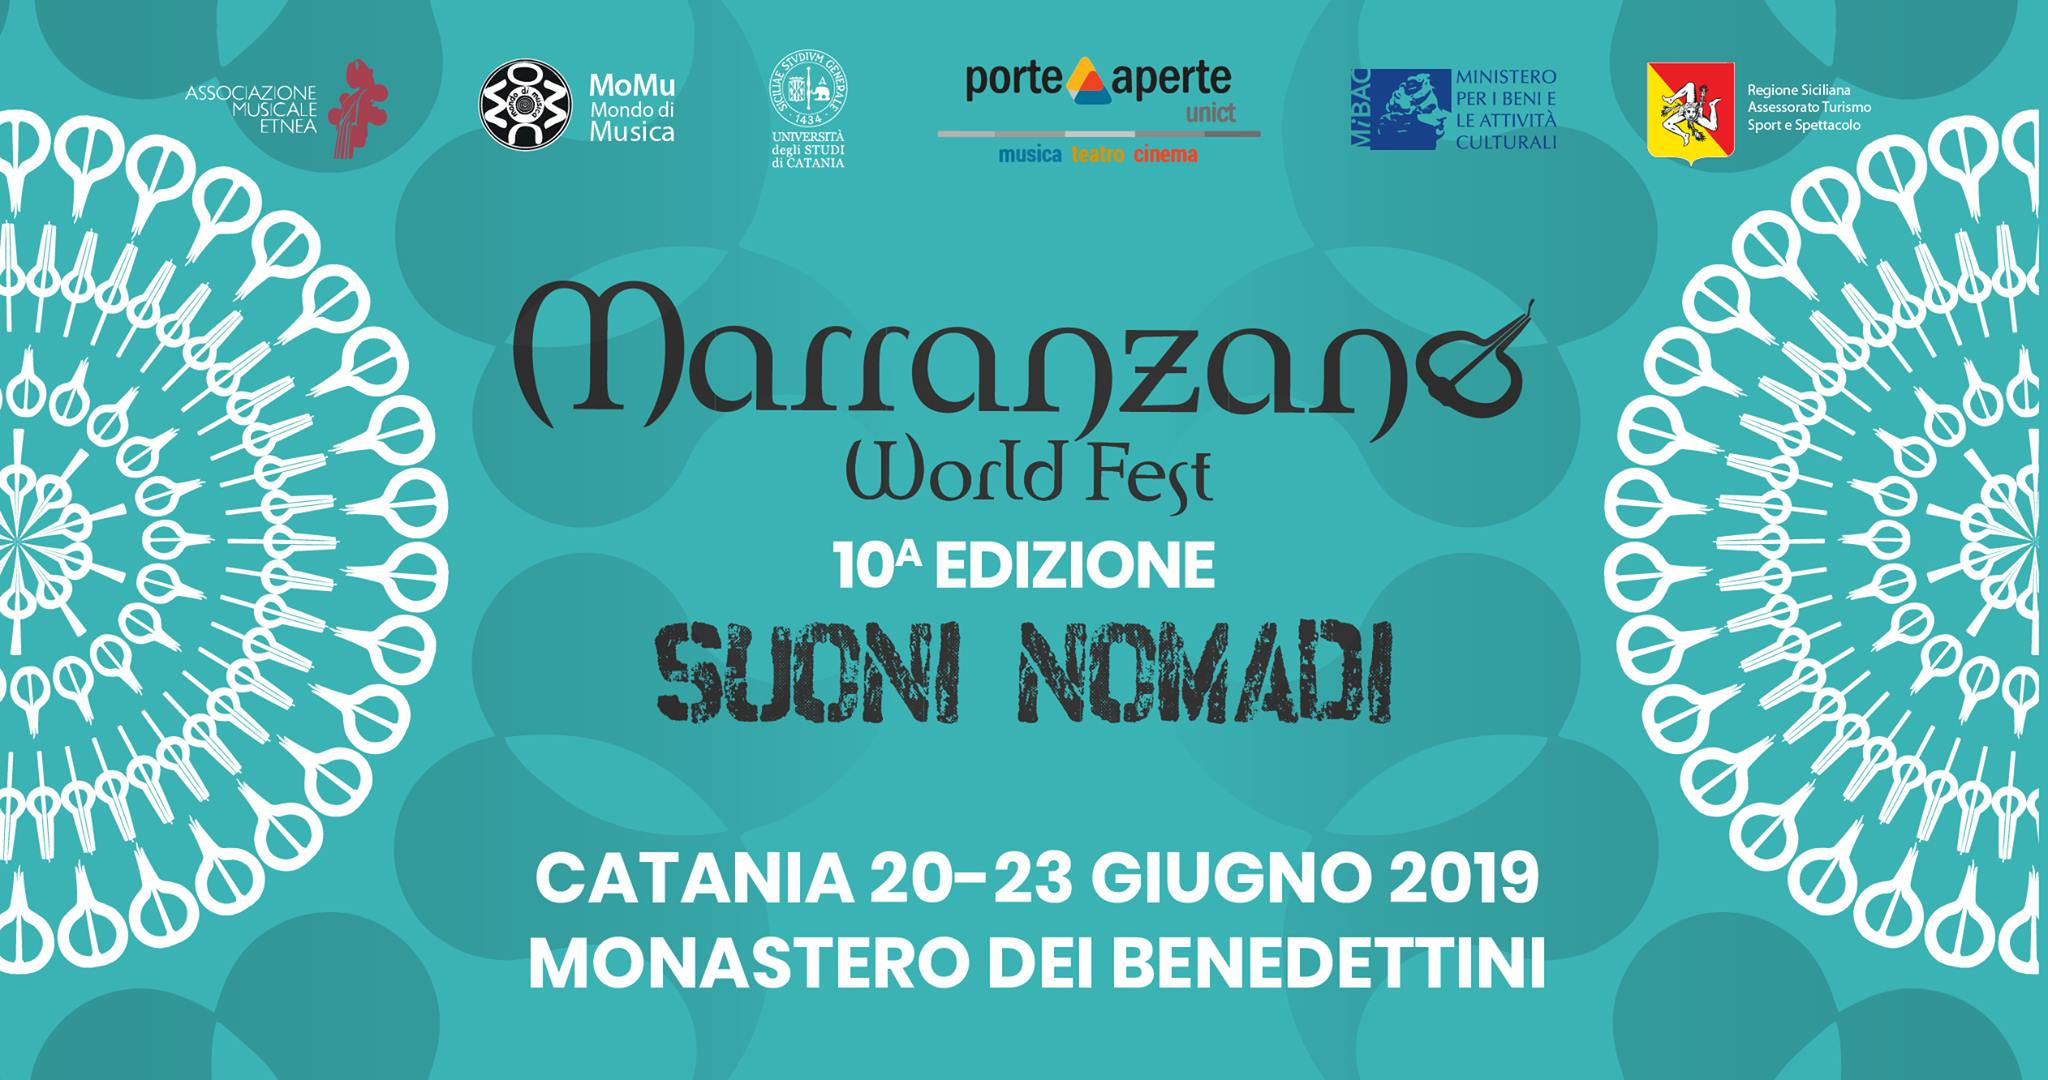 marranzano world fest 2019.jpg